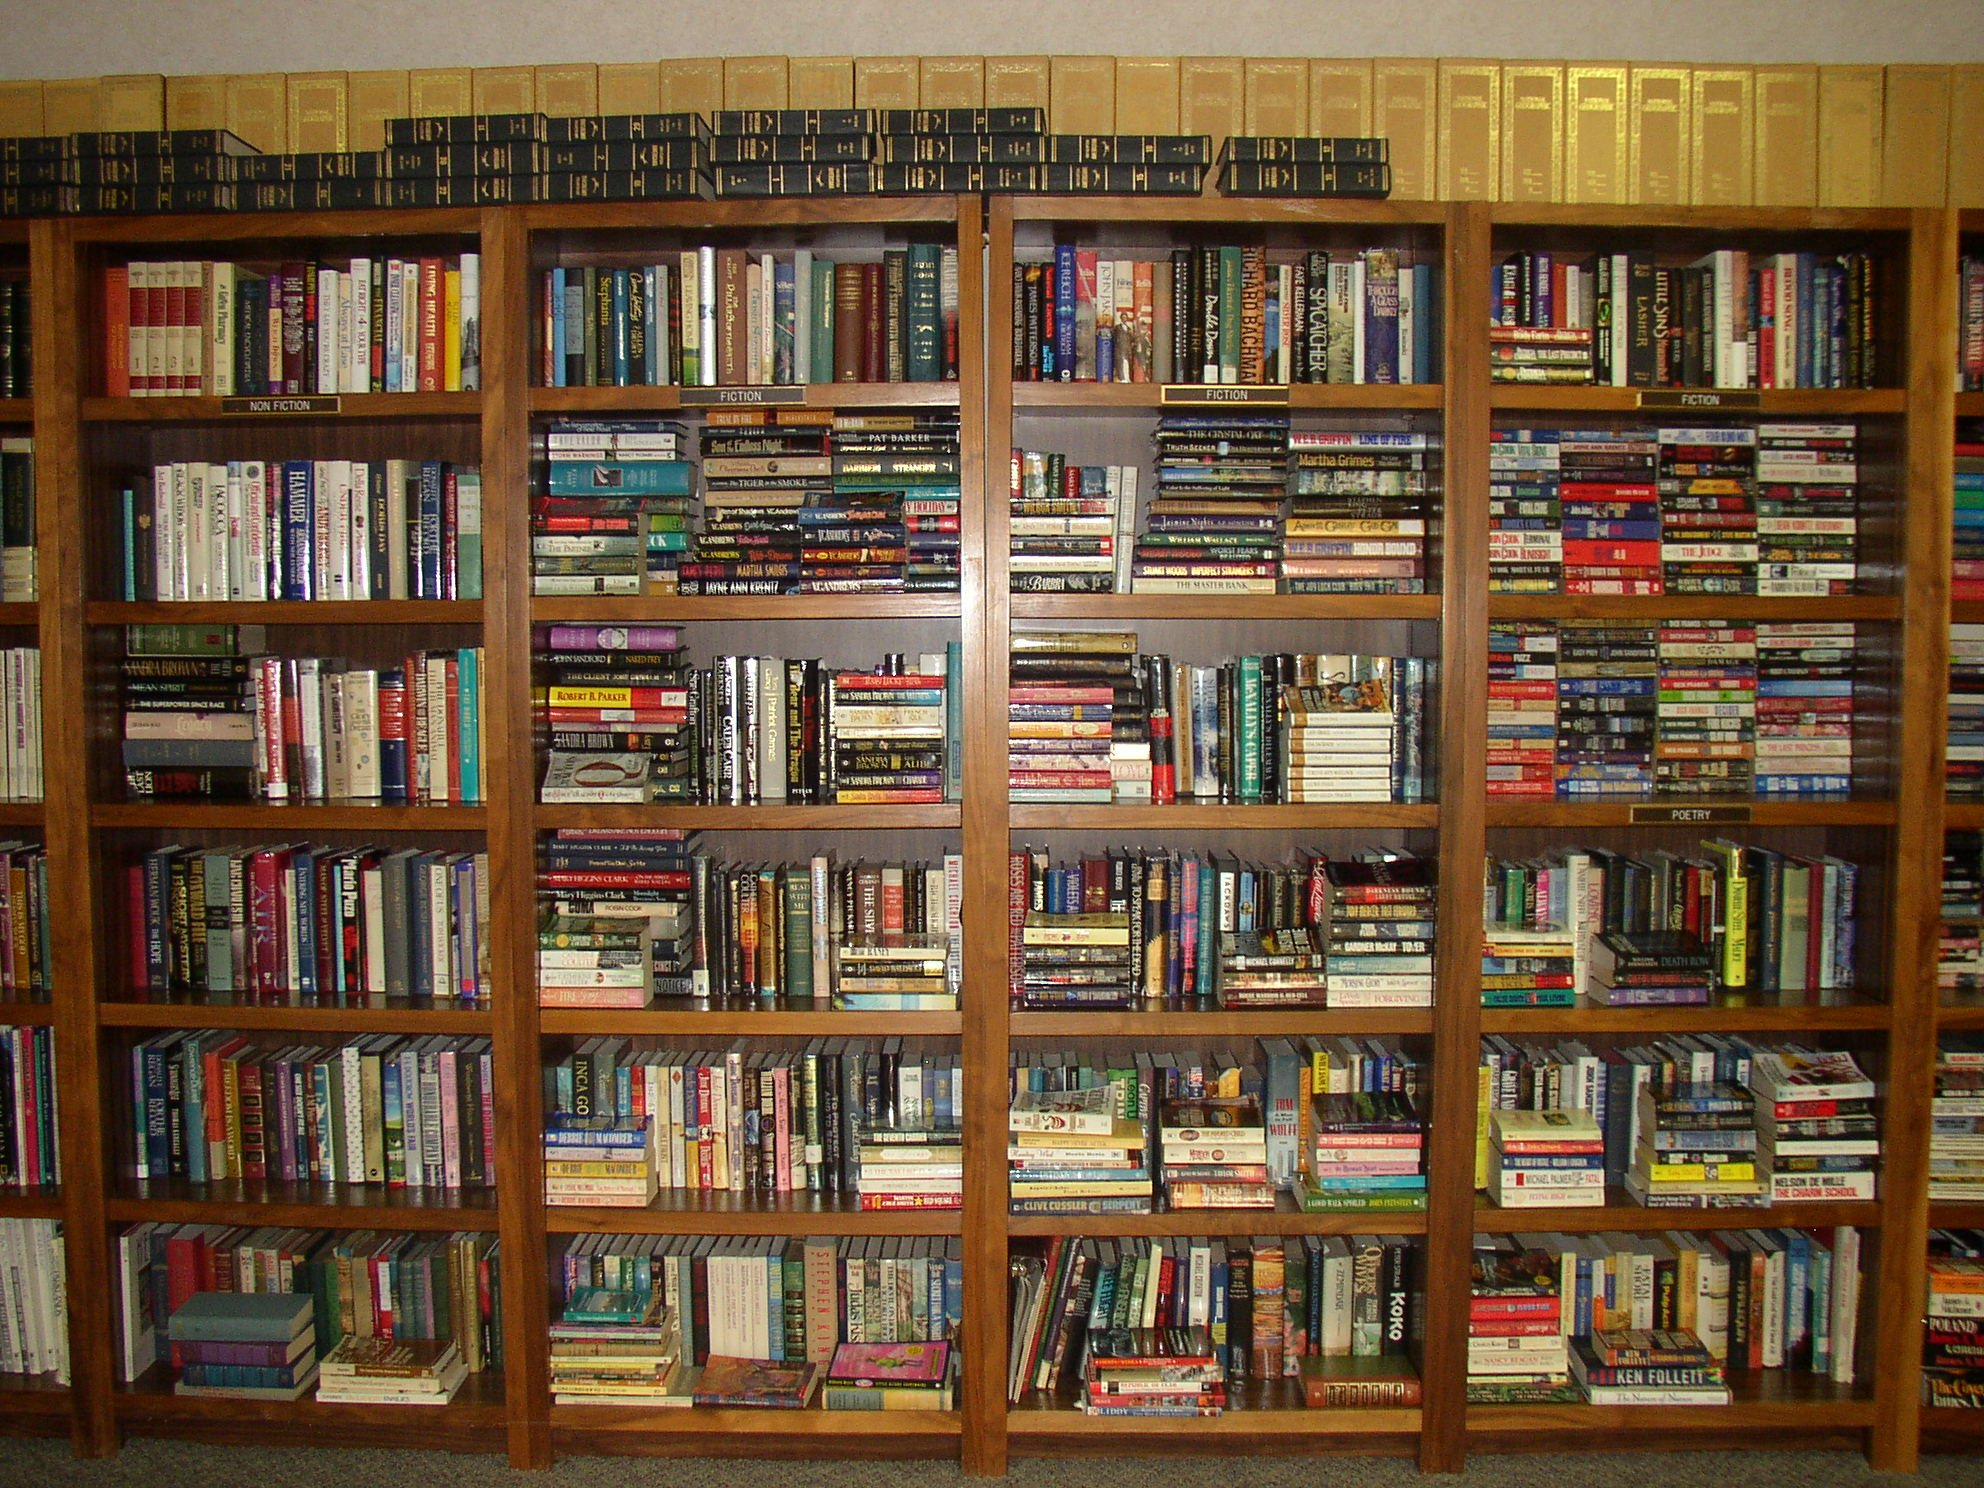 Home Library, Home Shelving, Book Shelving, Bookshelves, Books, Bookworm, Book Life